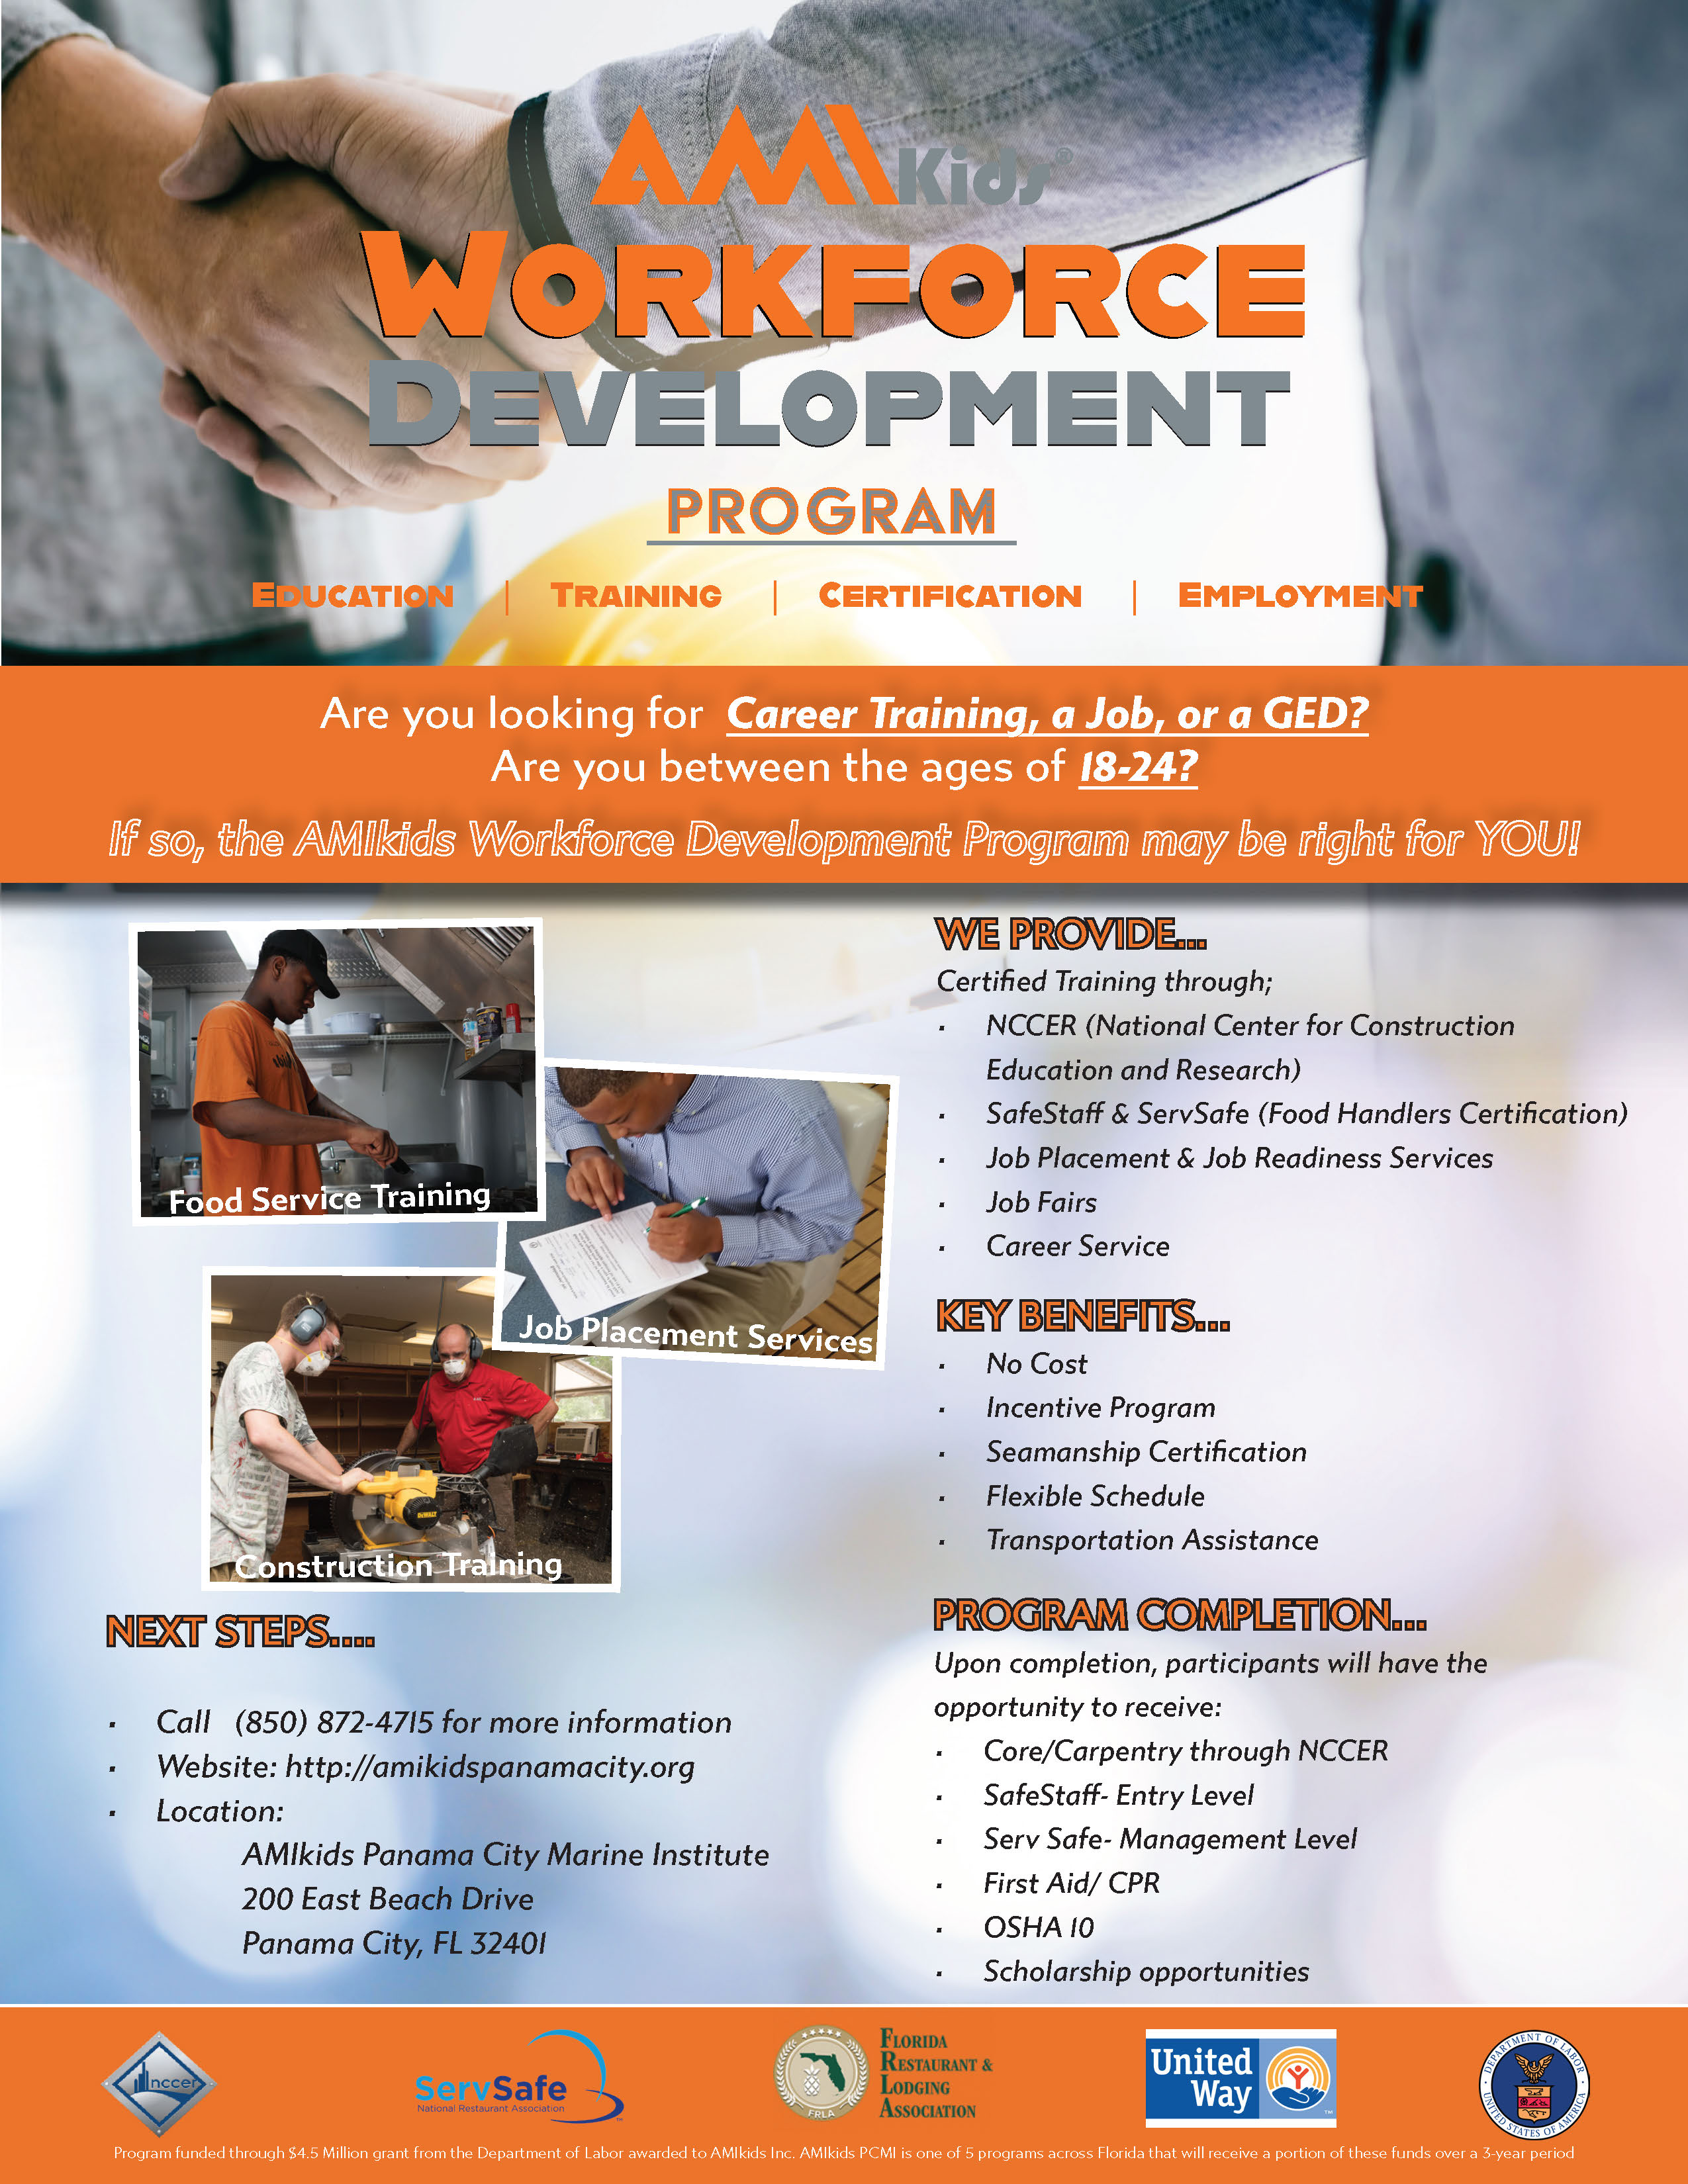 Workforce Development Flyer Panama City indd.indd 5.20.20